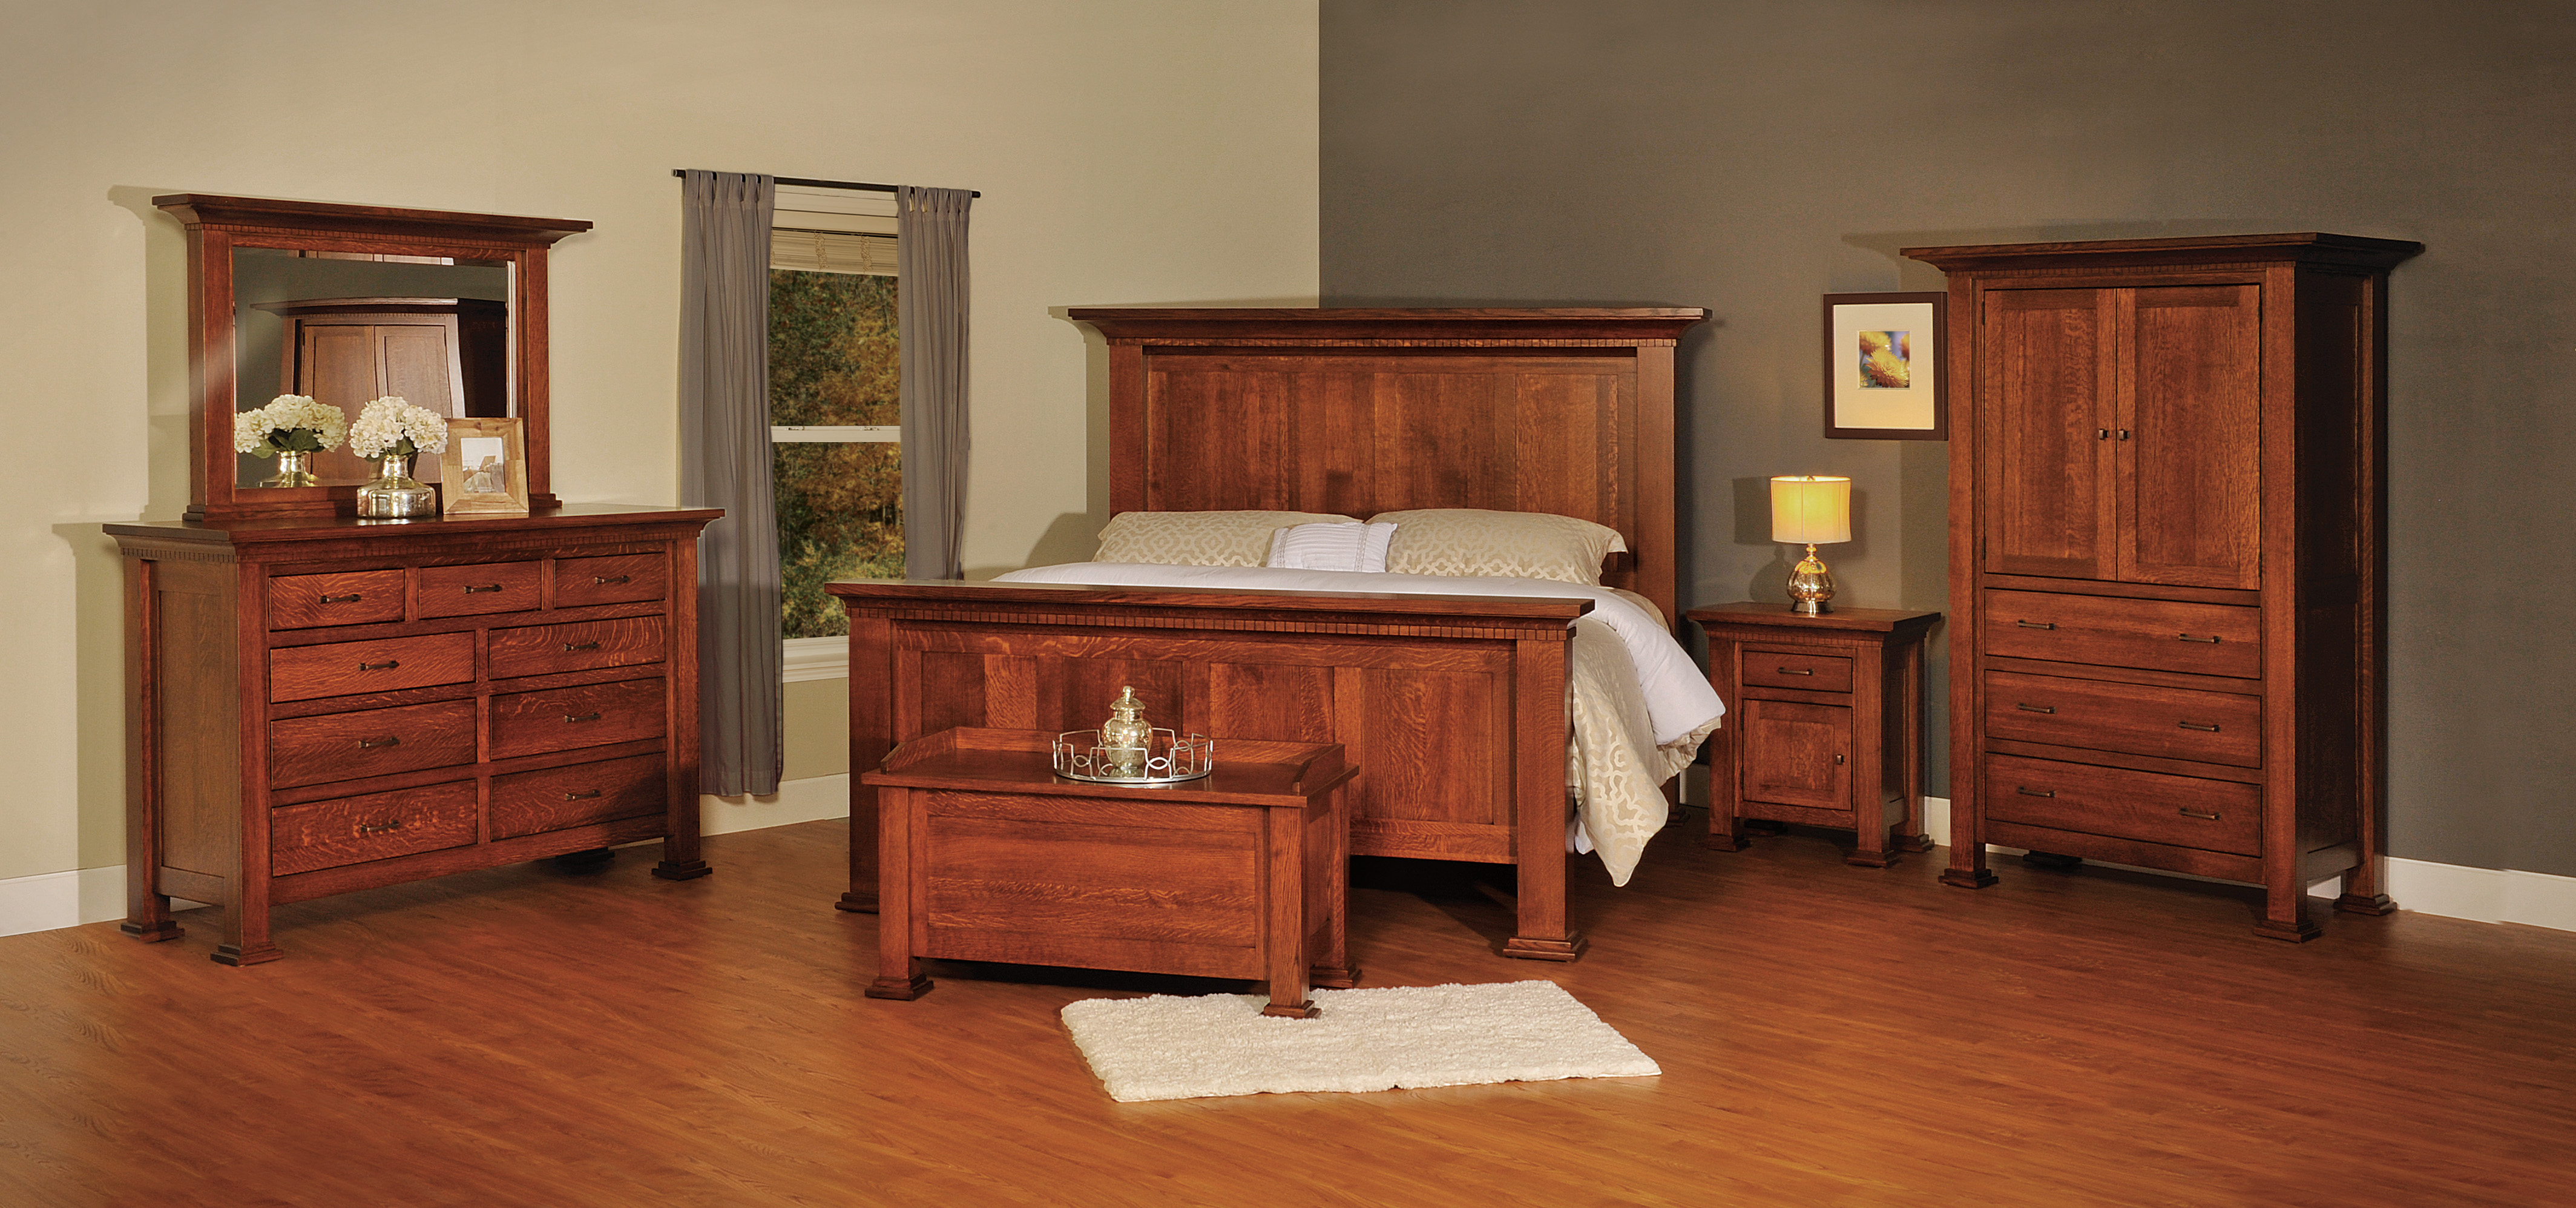 Empire Bedroom Suite Product